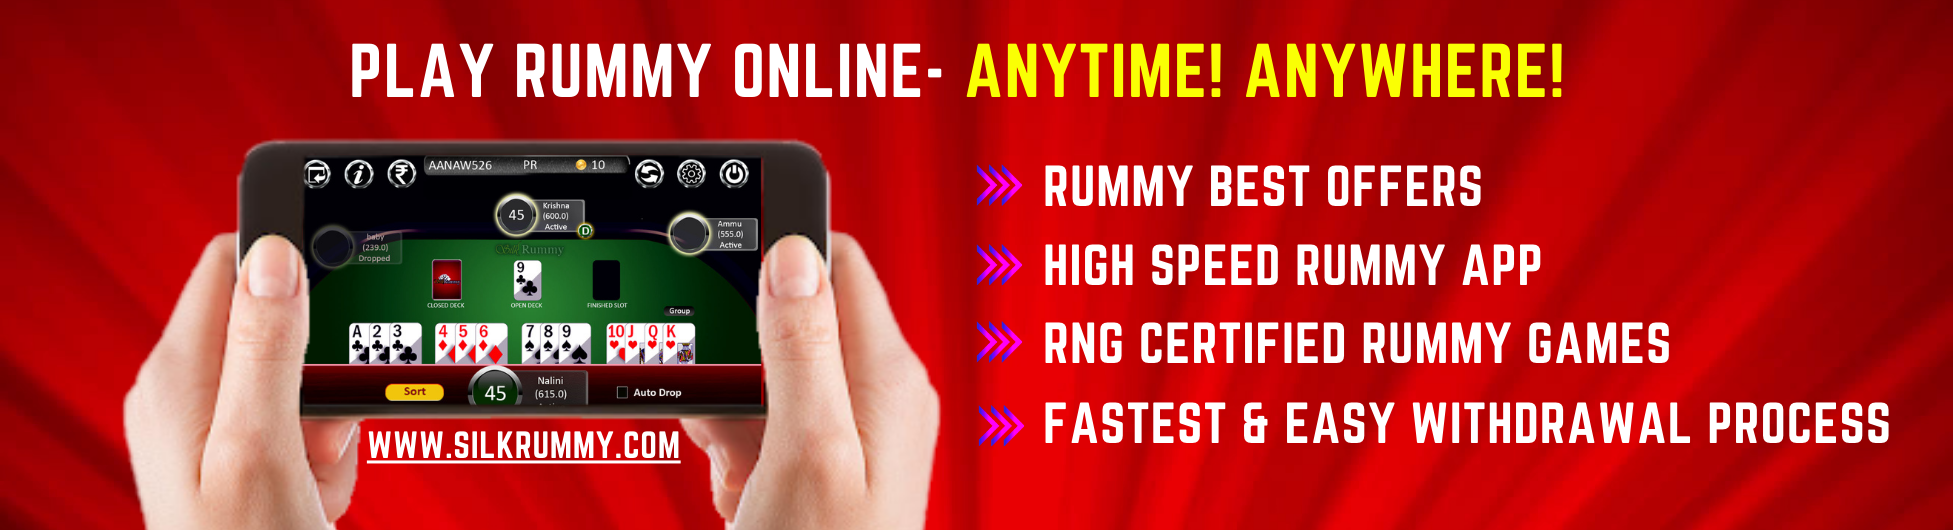 PLAY RUMMY ONLINE- ANYTIME! ANYWHERE!